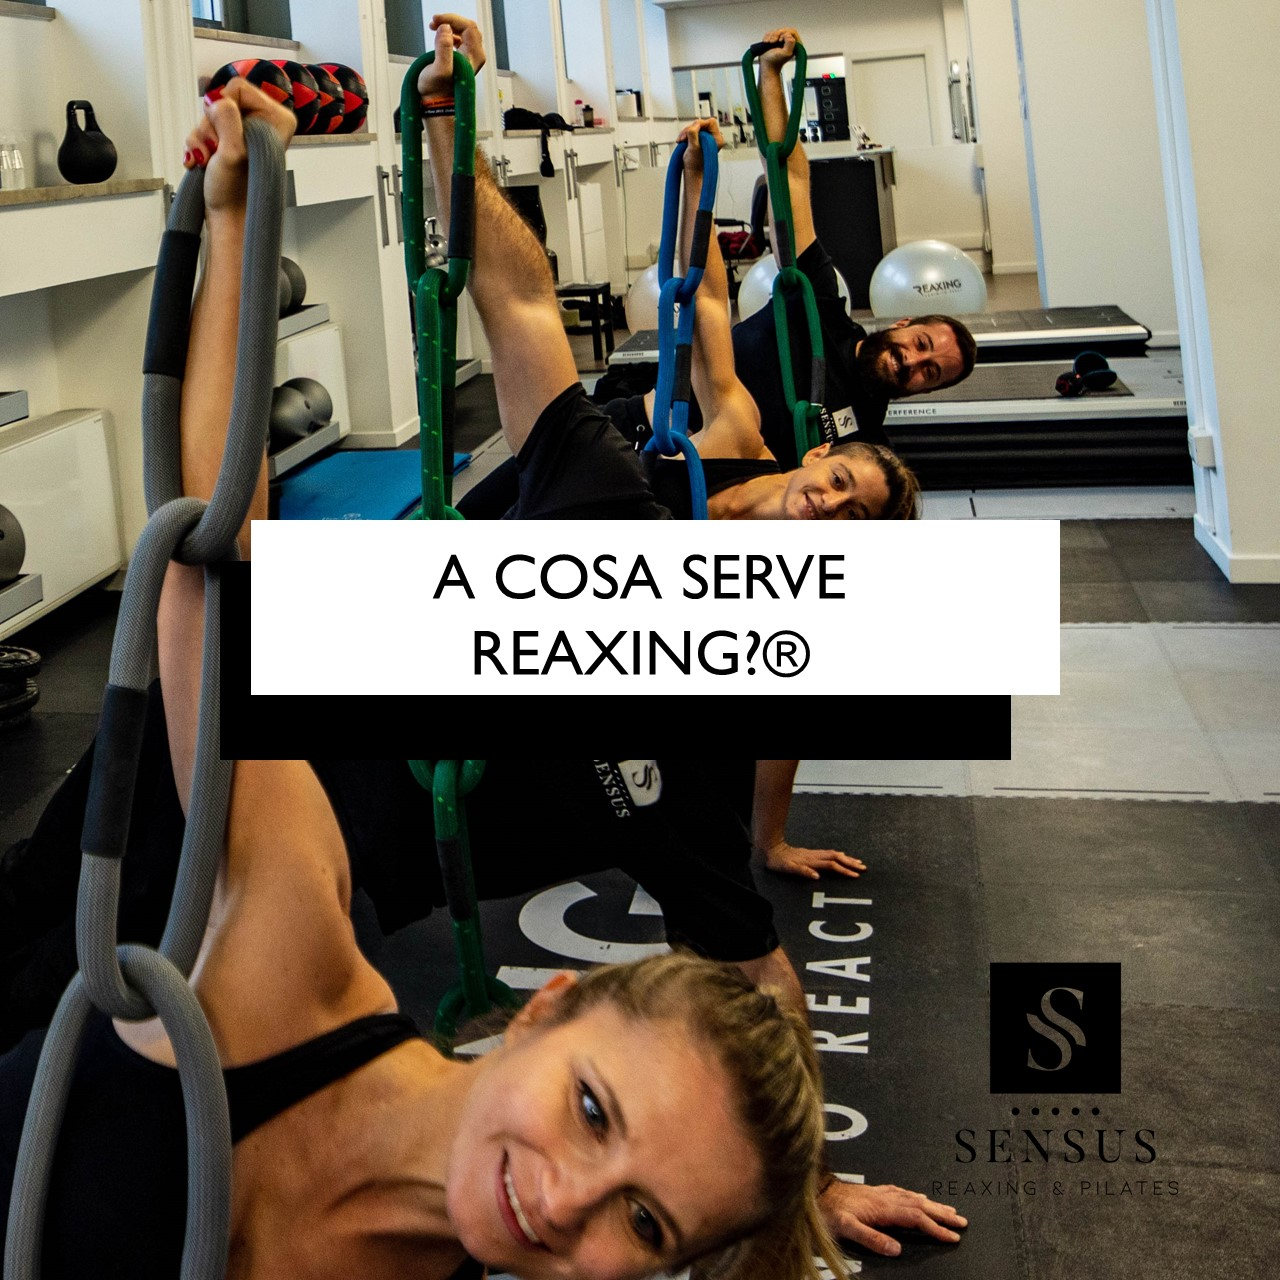 A Cosa Serve Reaxing®?